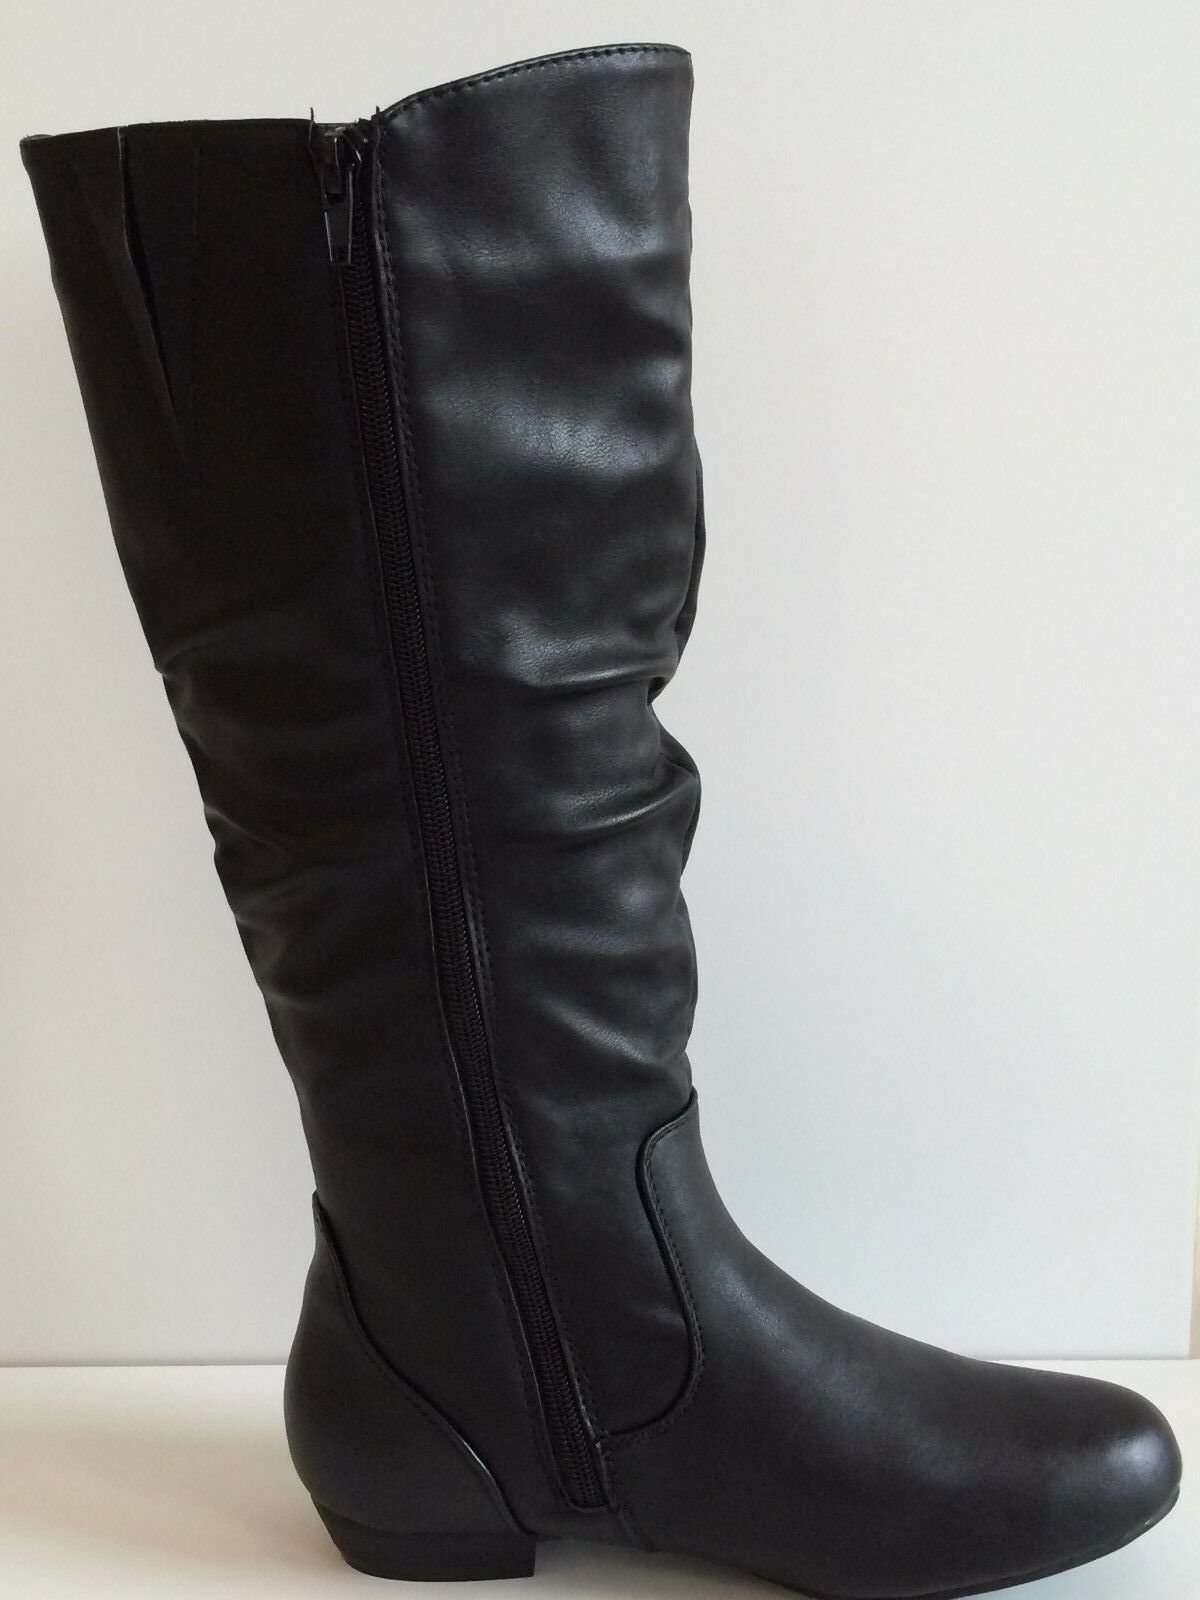 Final Fashion Quality Premium Knee High Women's Flat Faux Leather boots - Black